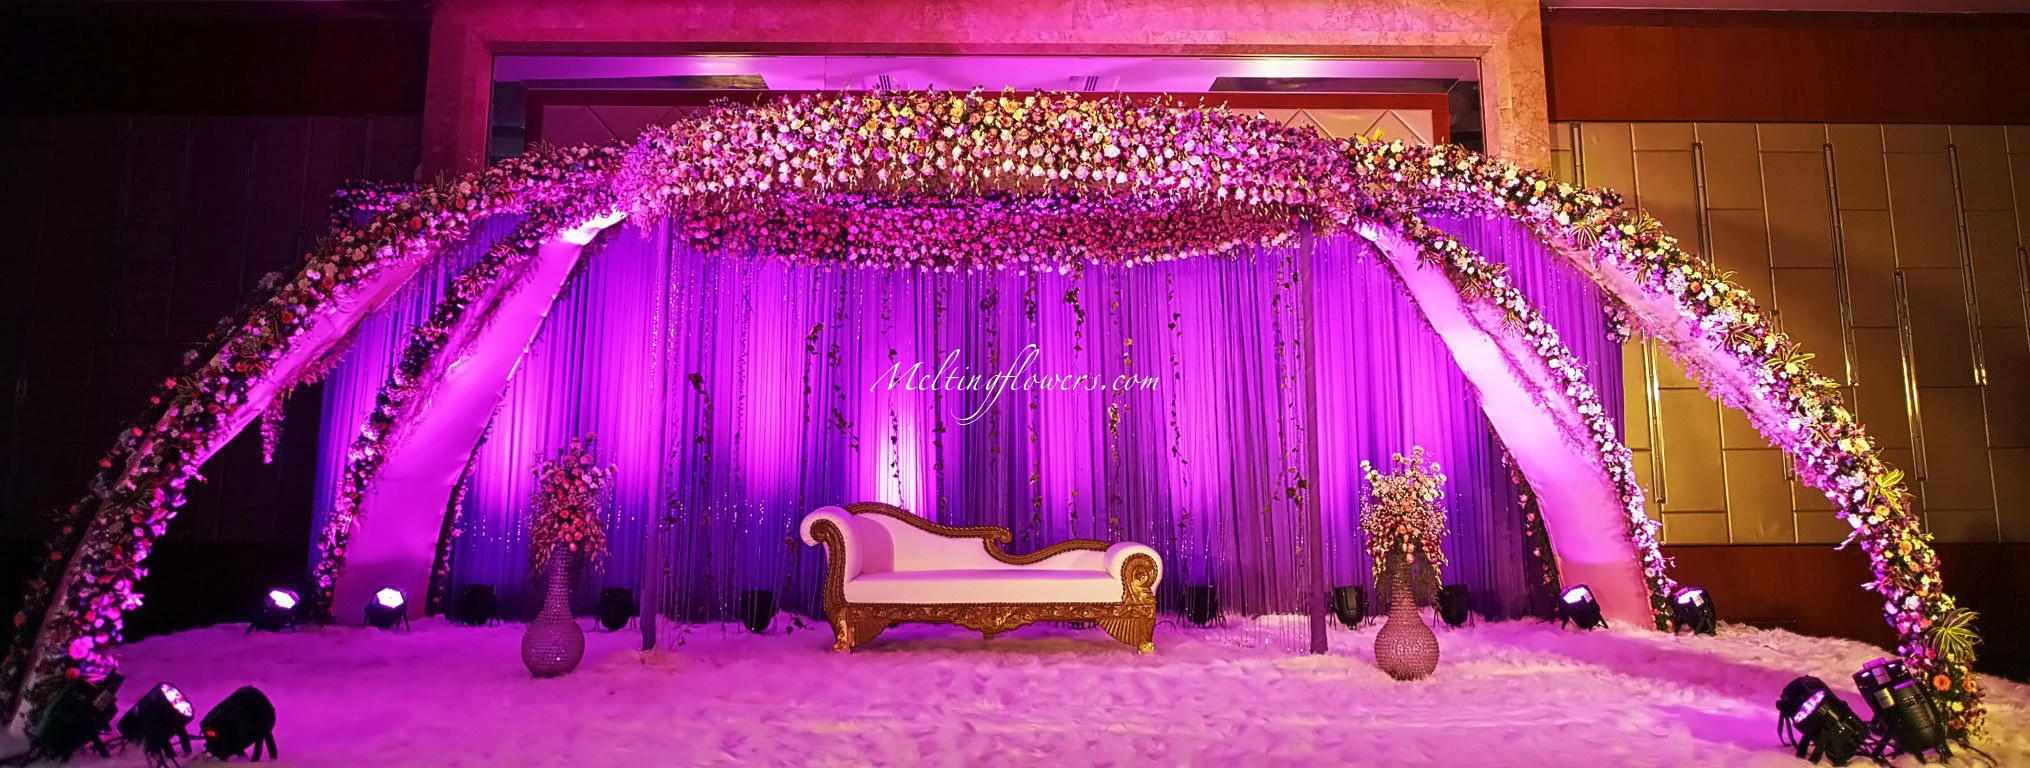 indian space ideas that reception stunning stage wedding decor will and your transform flowering decorations